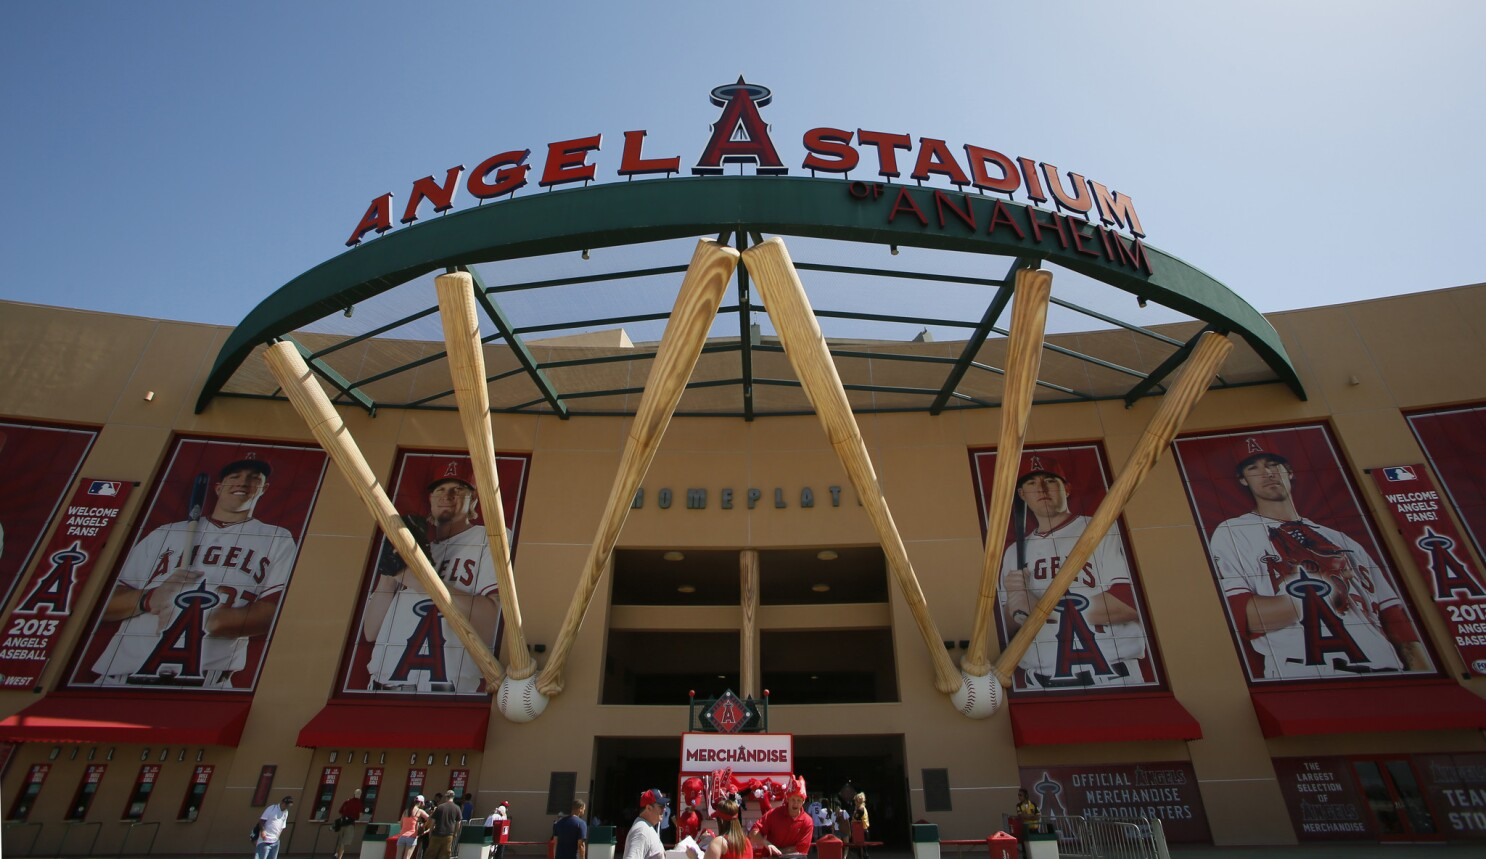 Angels lease talks: Anaheim mayor insists on 'market prices'